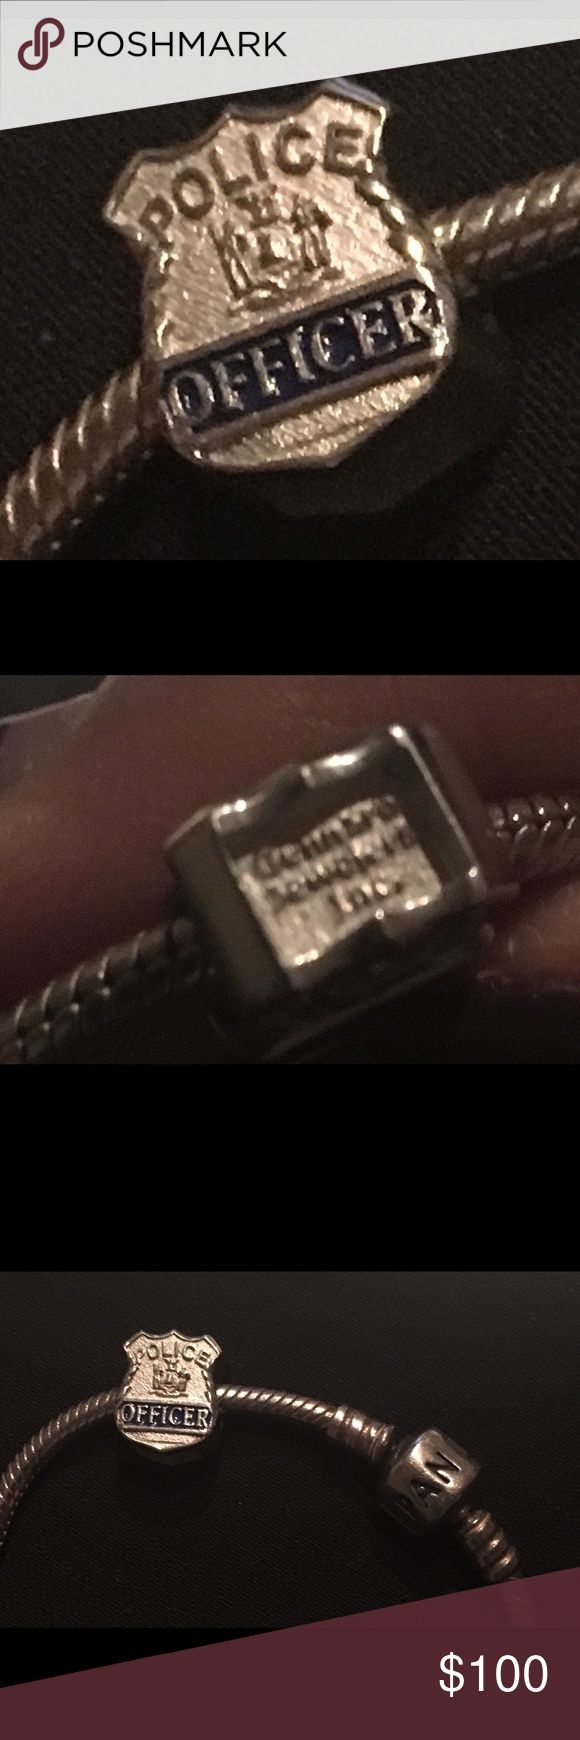 Pandora Law enforcement charm, sterling silver Fits pandora charm bracelet or any chain/bracelet with a small lock. 9.25 Sterling silver, genuine law enforcement charm. Price firm. No trades. Jewelry Bracelets